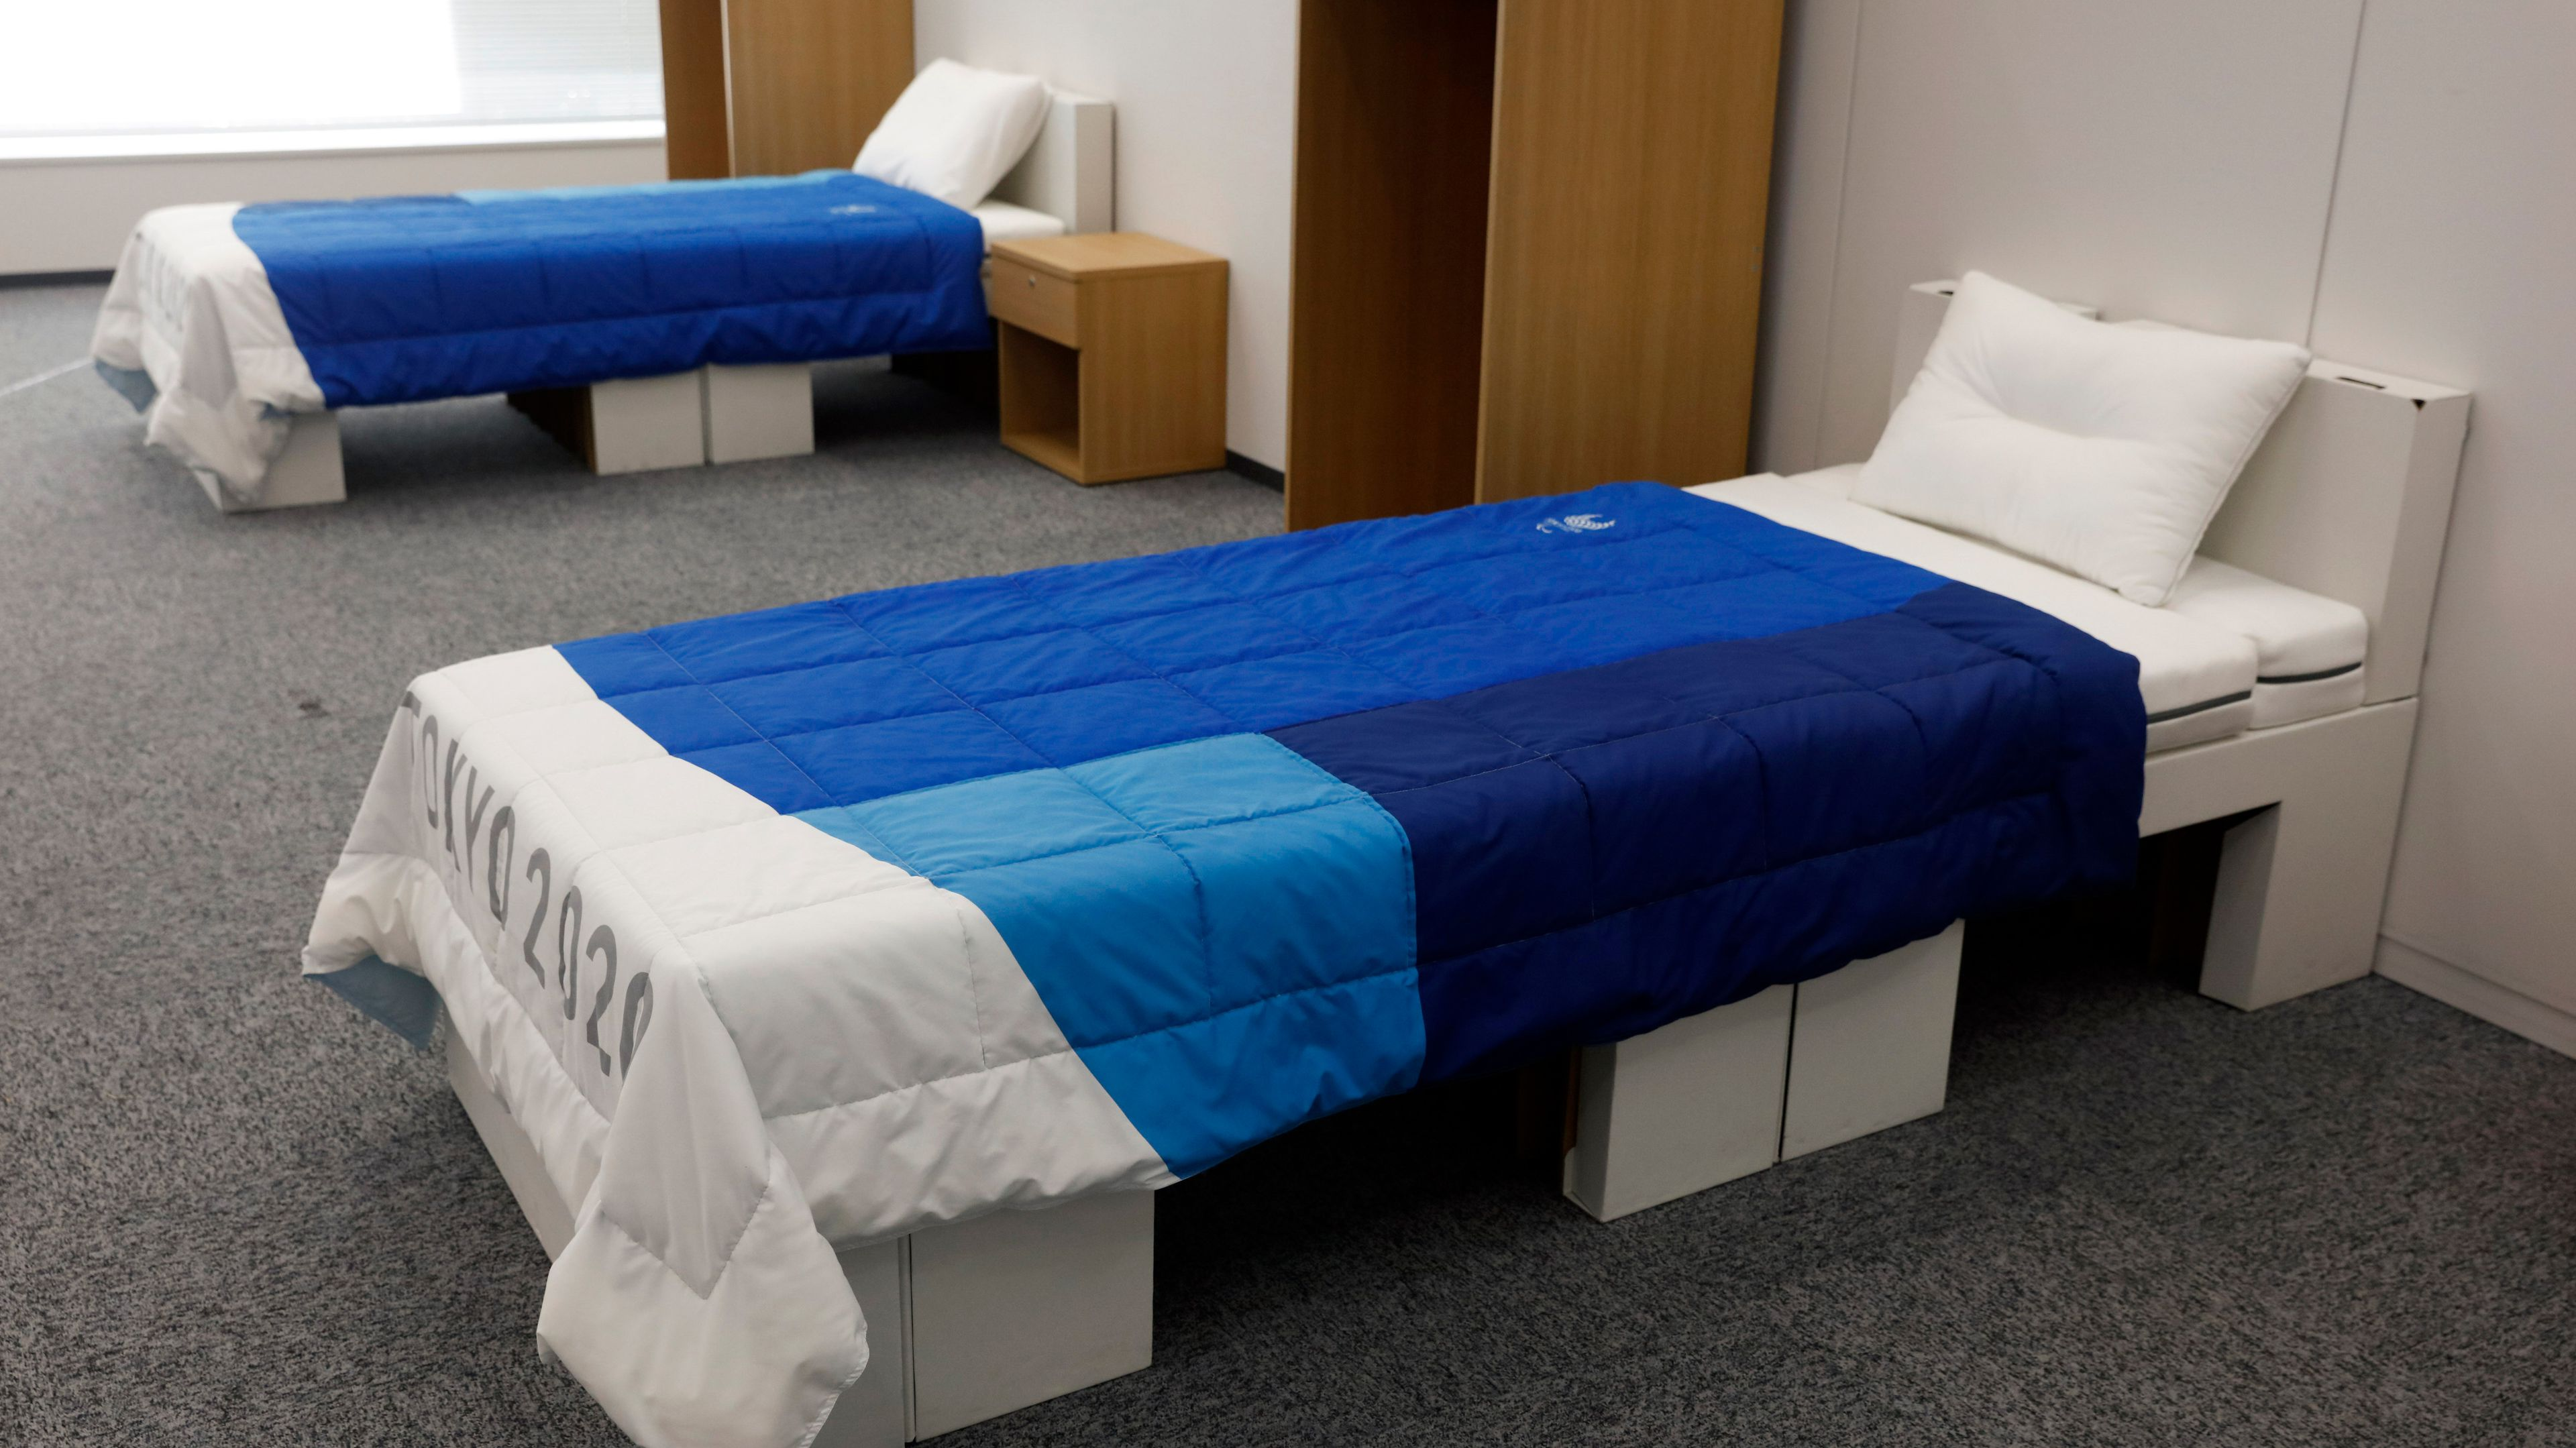 Unveiled: the bedroom furniture to be used at the Athletes' Village at the Tokyo Games.